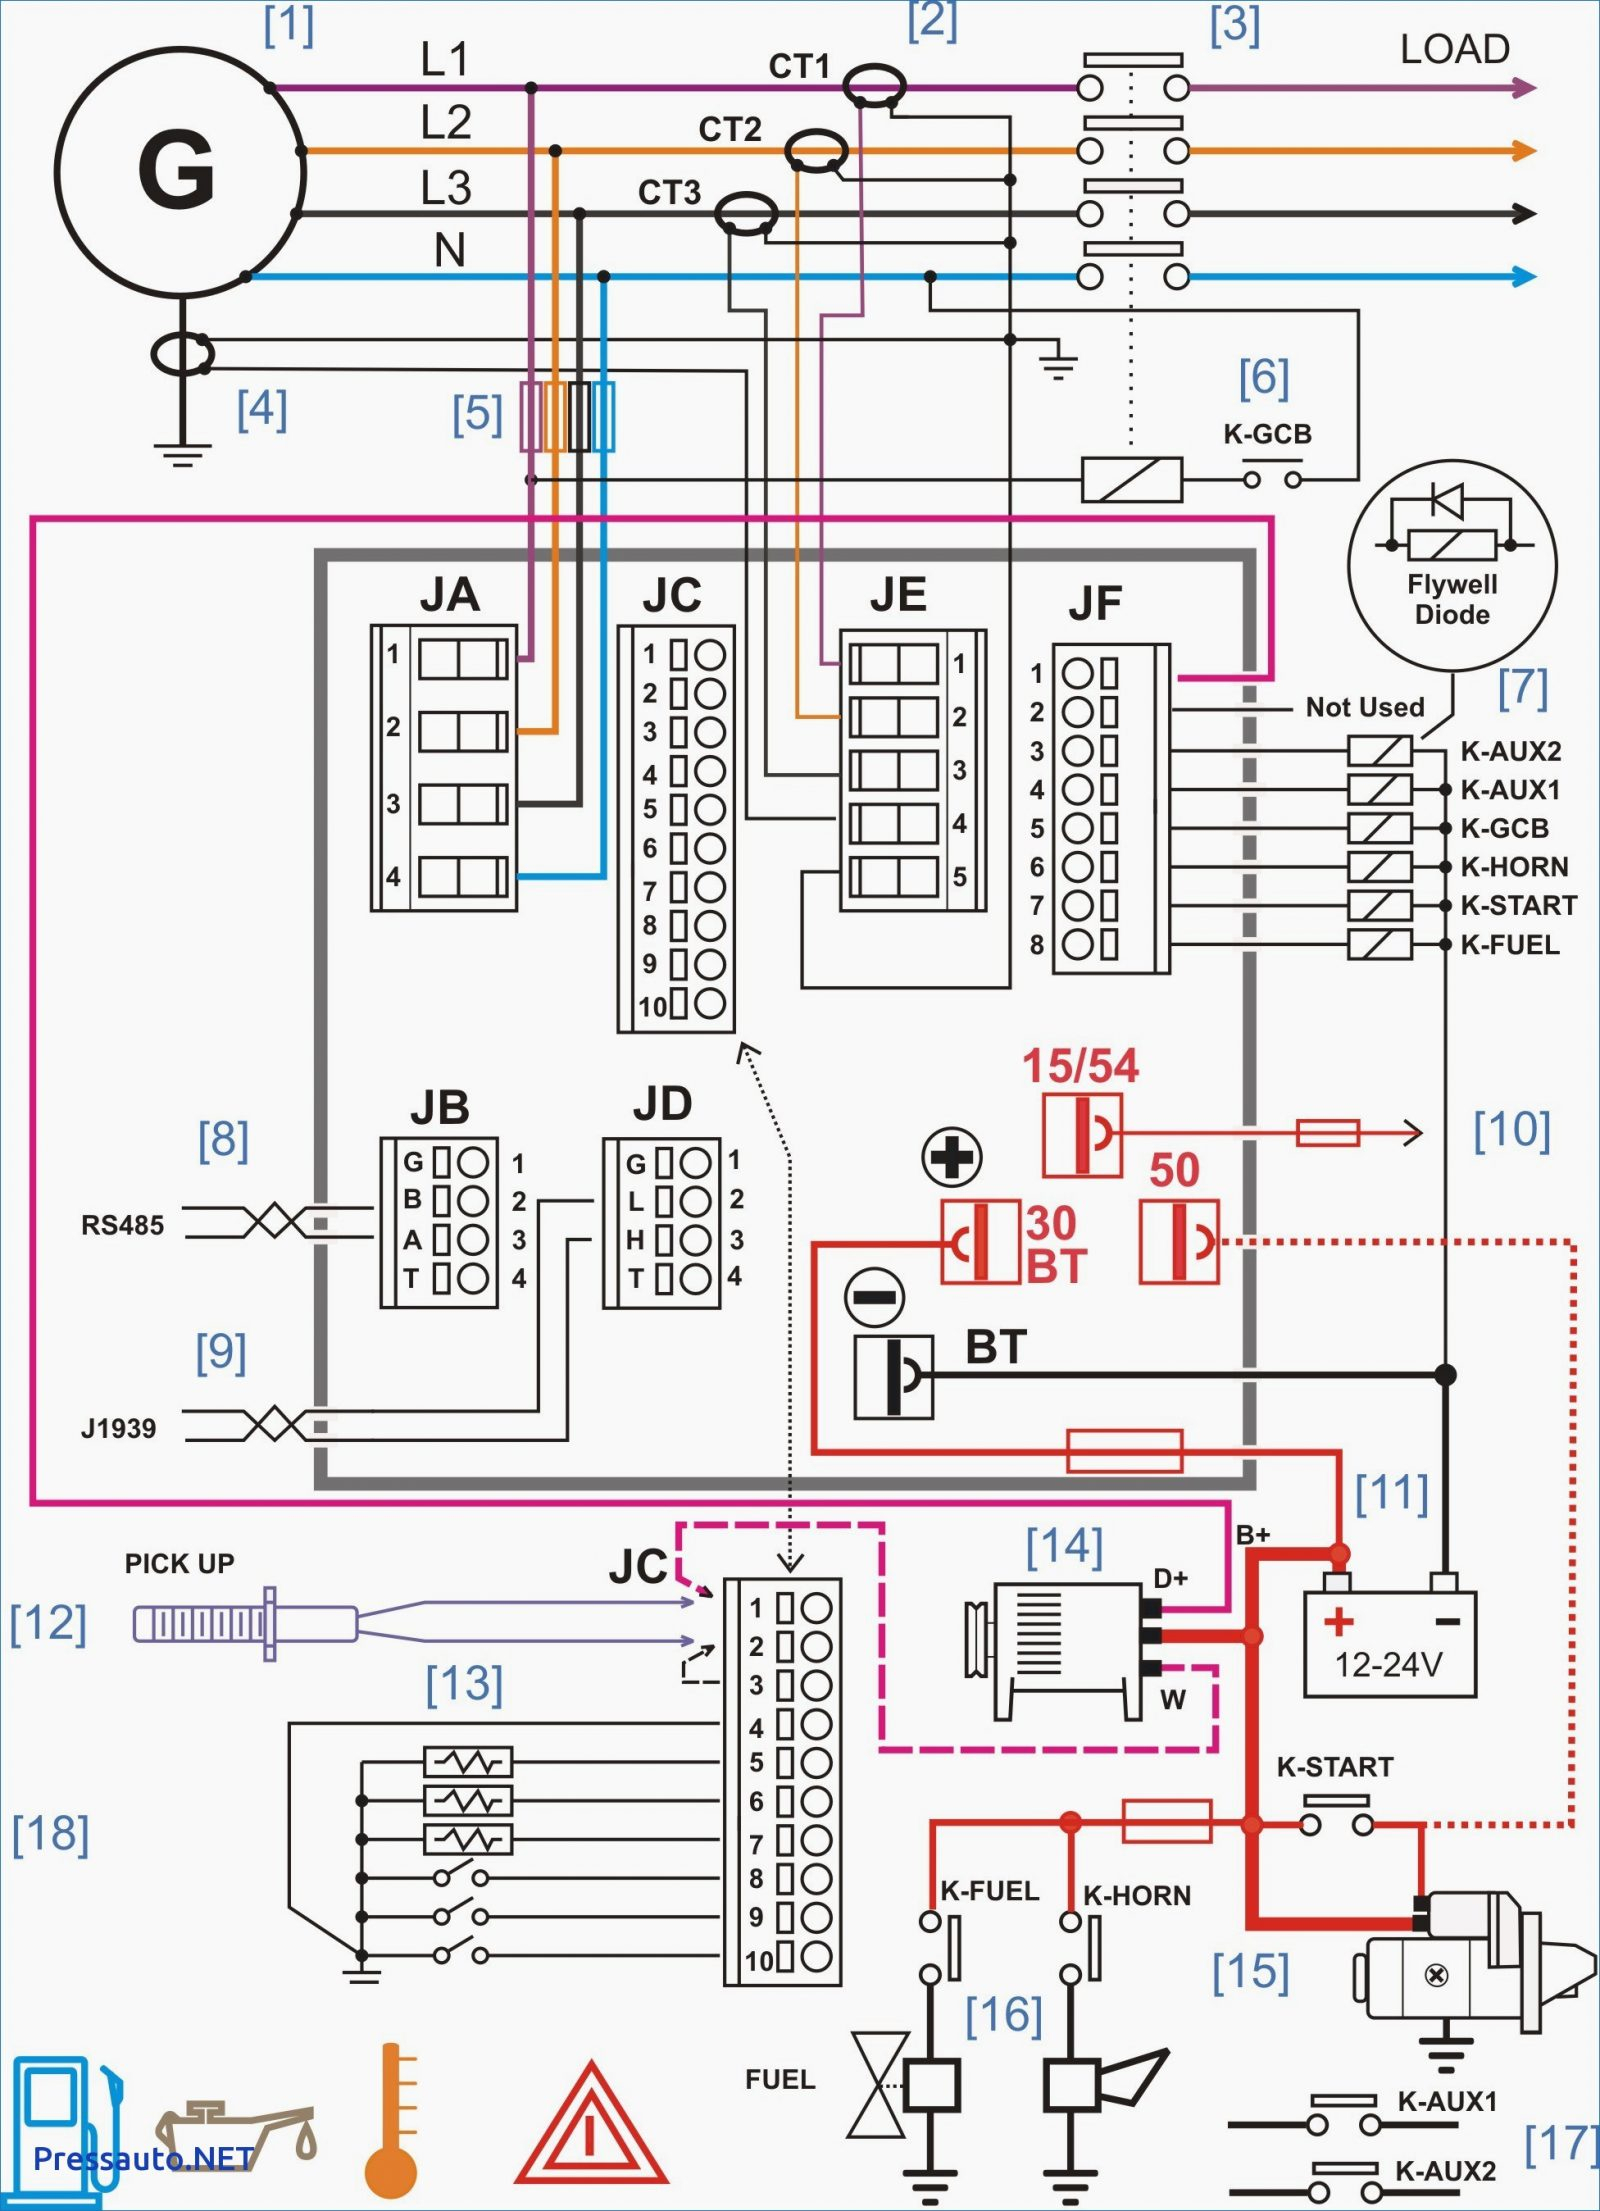 asco 300 wiring diagram Download-Asco Automatic Transfer Switch Series 300 Wiring Diagram asco 7000 Series Automatic Transfer Switch Wiring 8-k